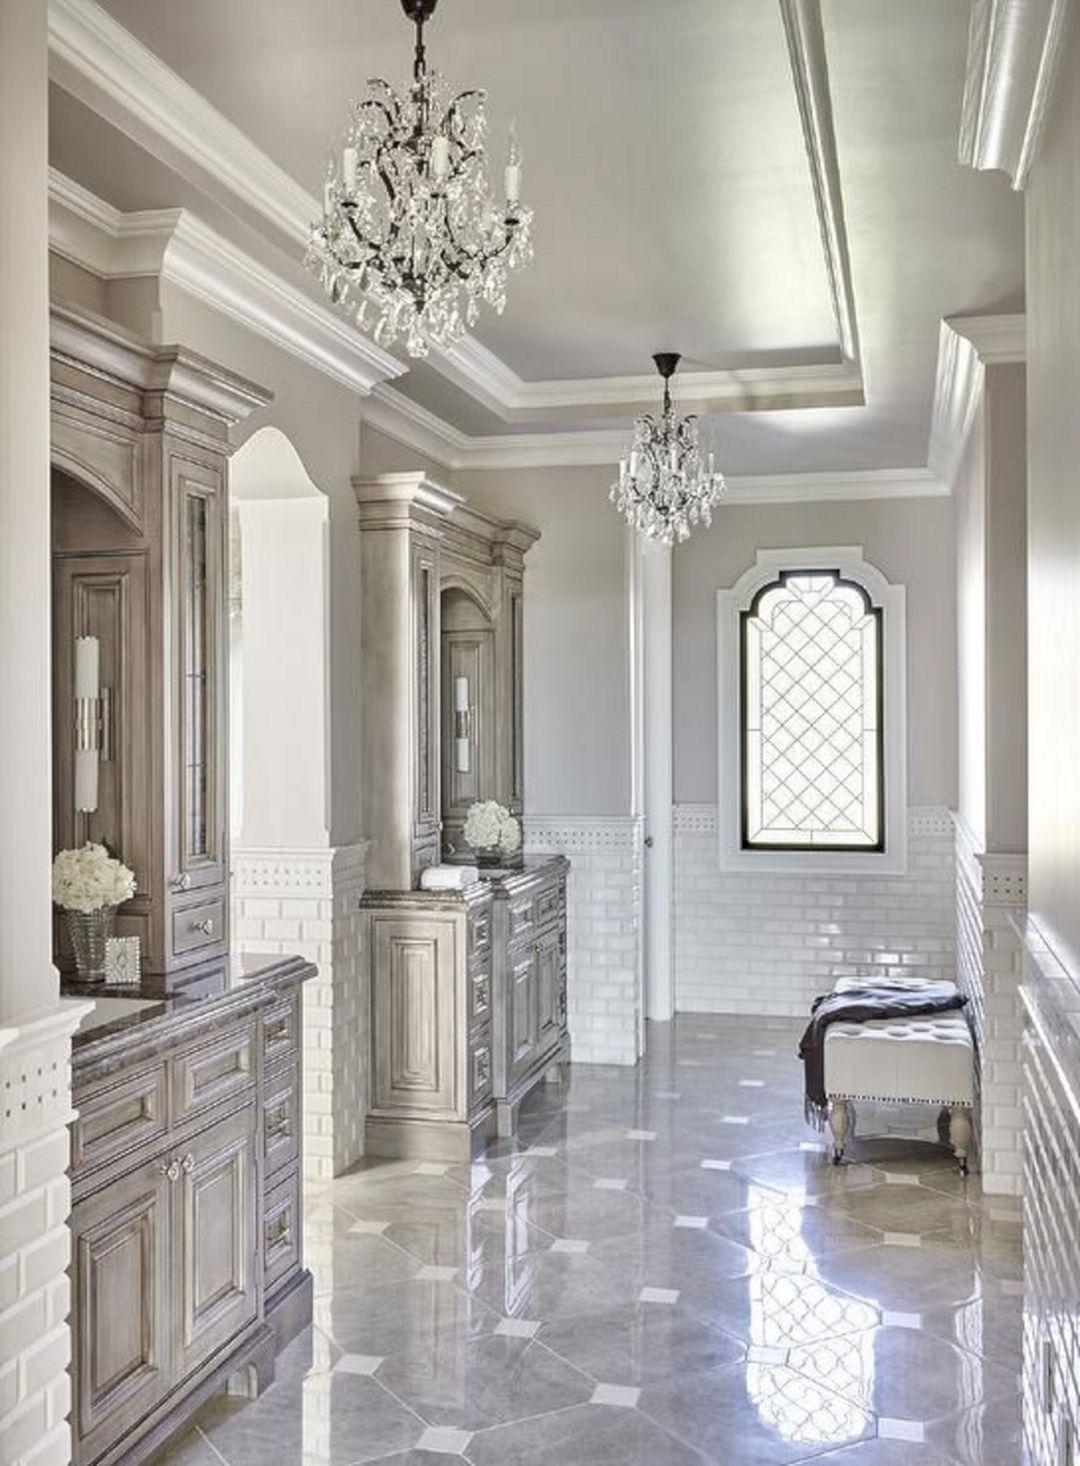 Astounding Astonishing 15 Luxurious Master Bathroom Design For Inspiration Https Luxury Master Bathrooms Luxury Bathroom Master Baths Master Bathroom Design